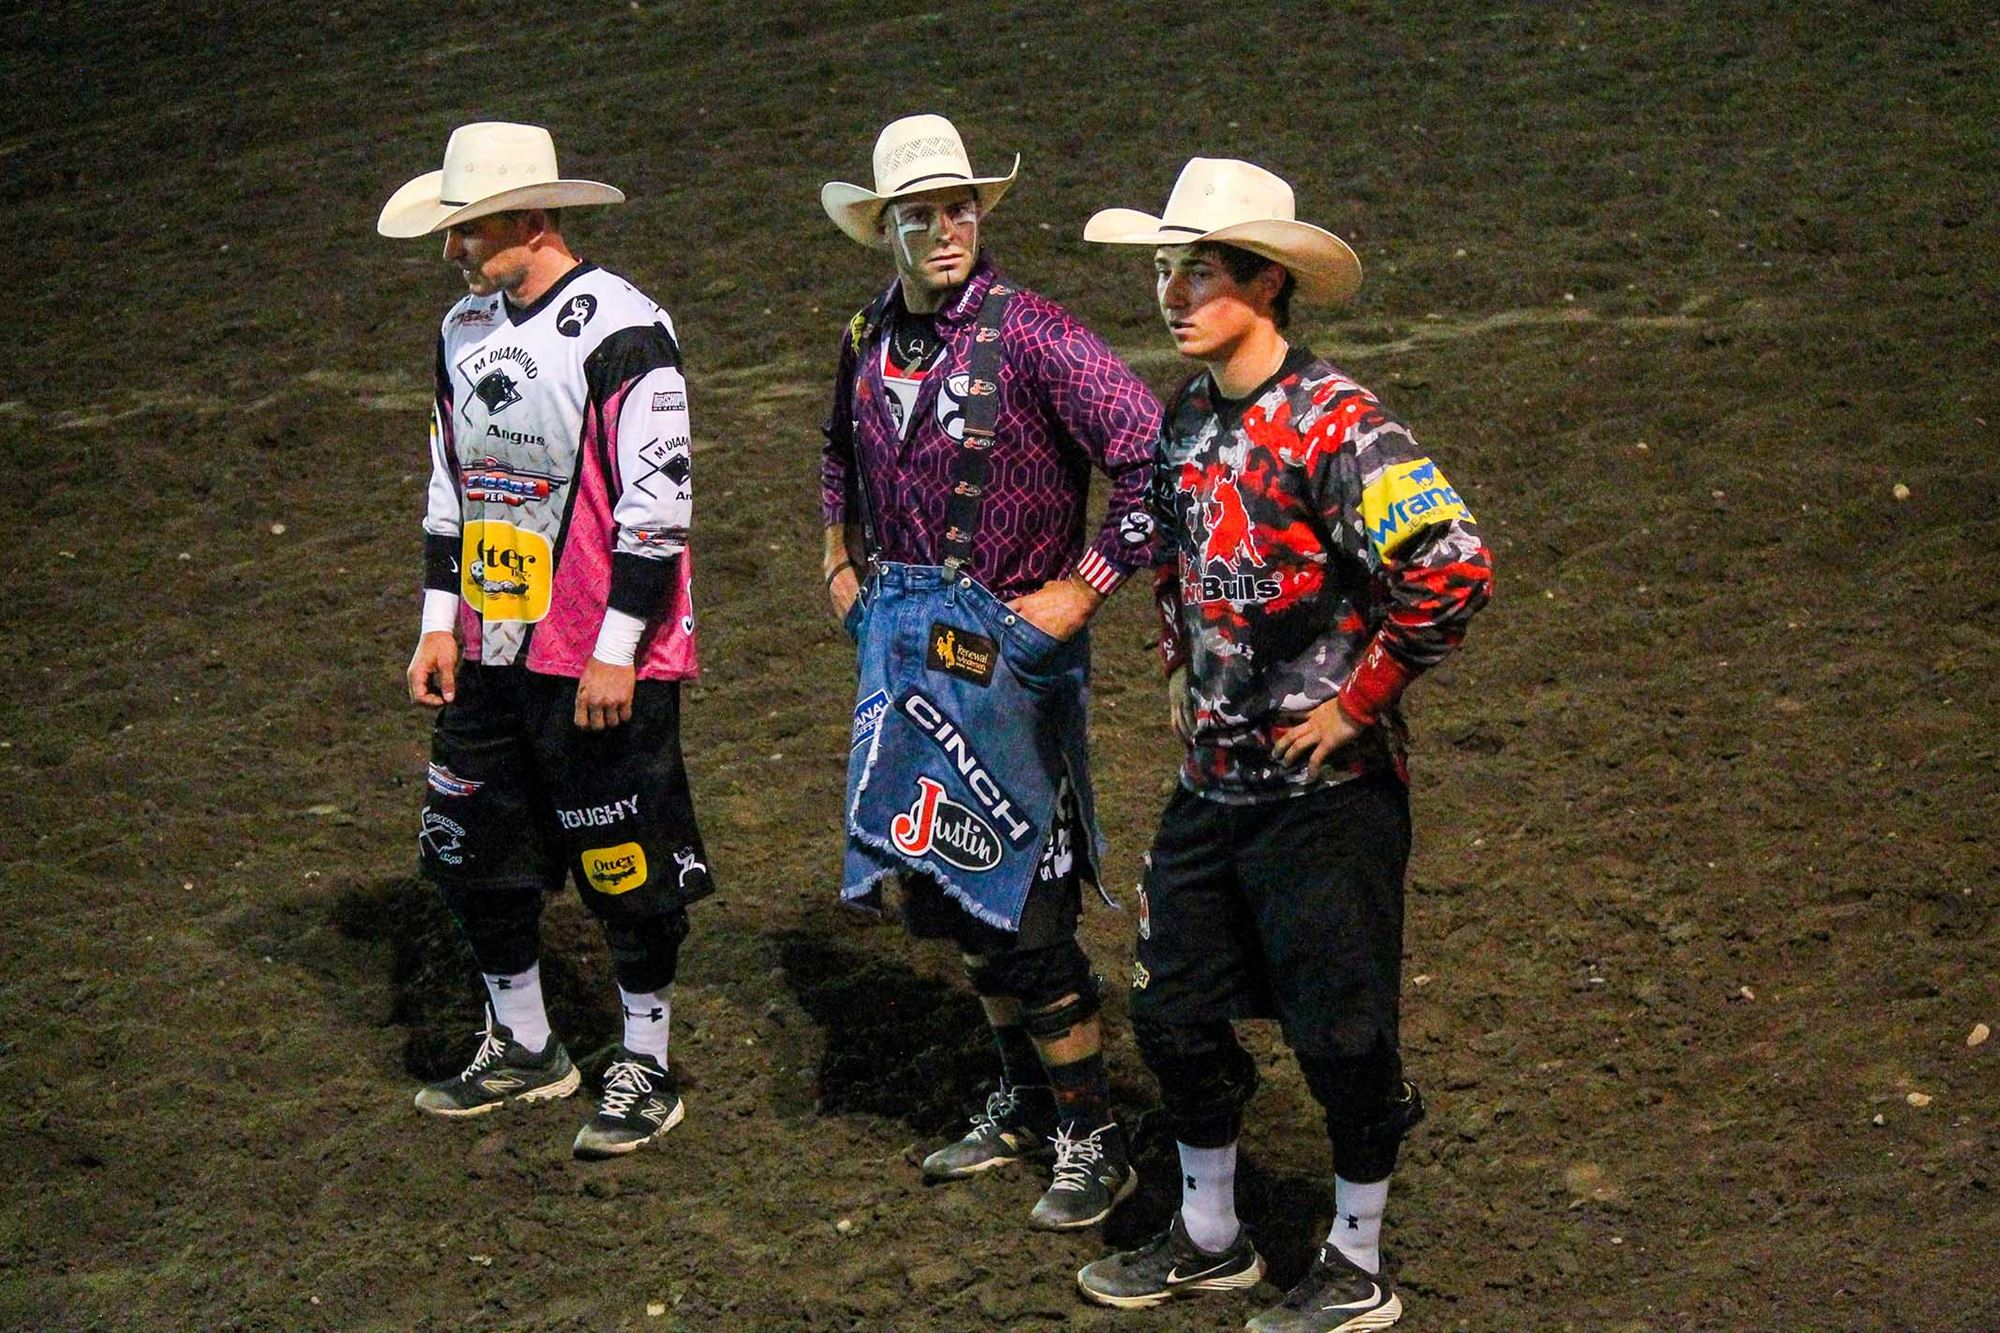 Nate Jestes, Dusty Tuckness and Miles Barry